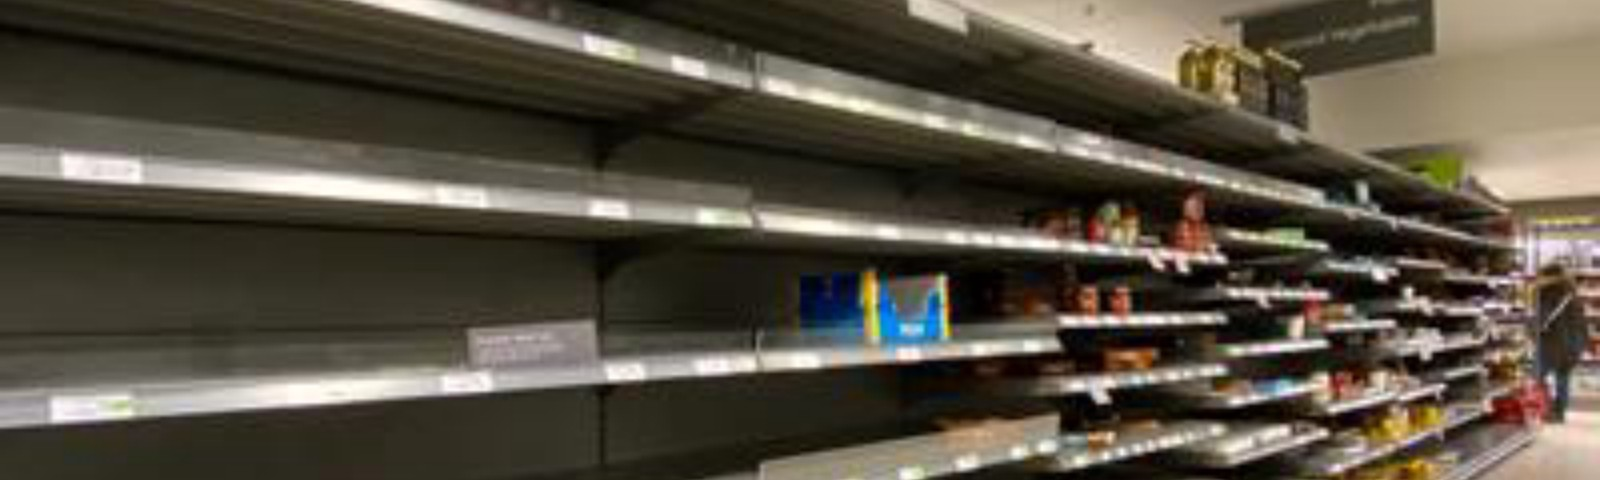 Picture of largely empty supermarket shelving with a few empty product boxes lying untidily in the shelves.